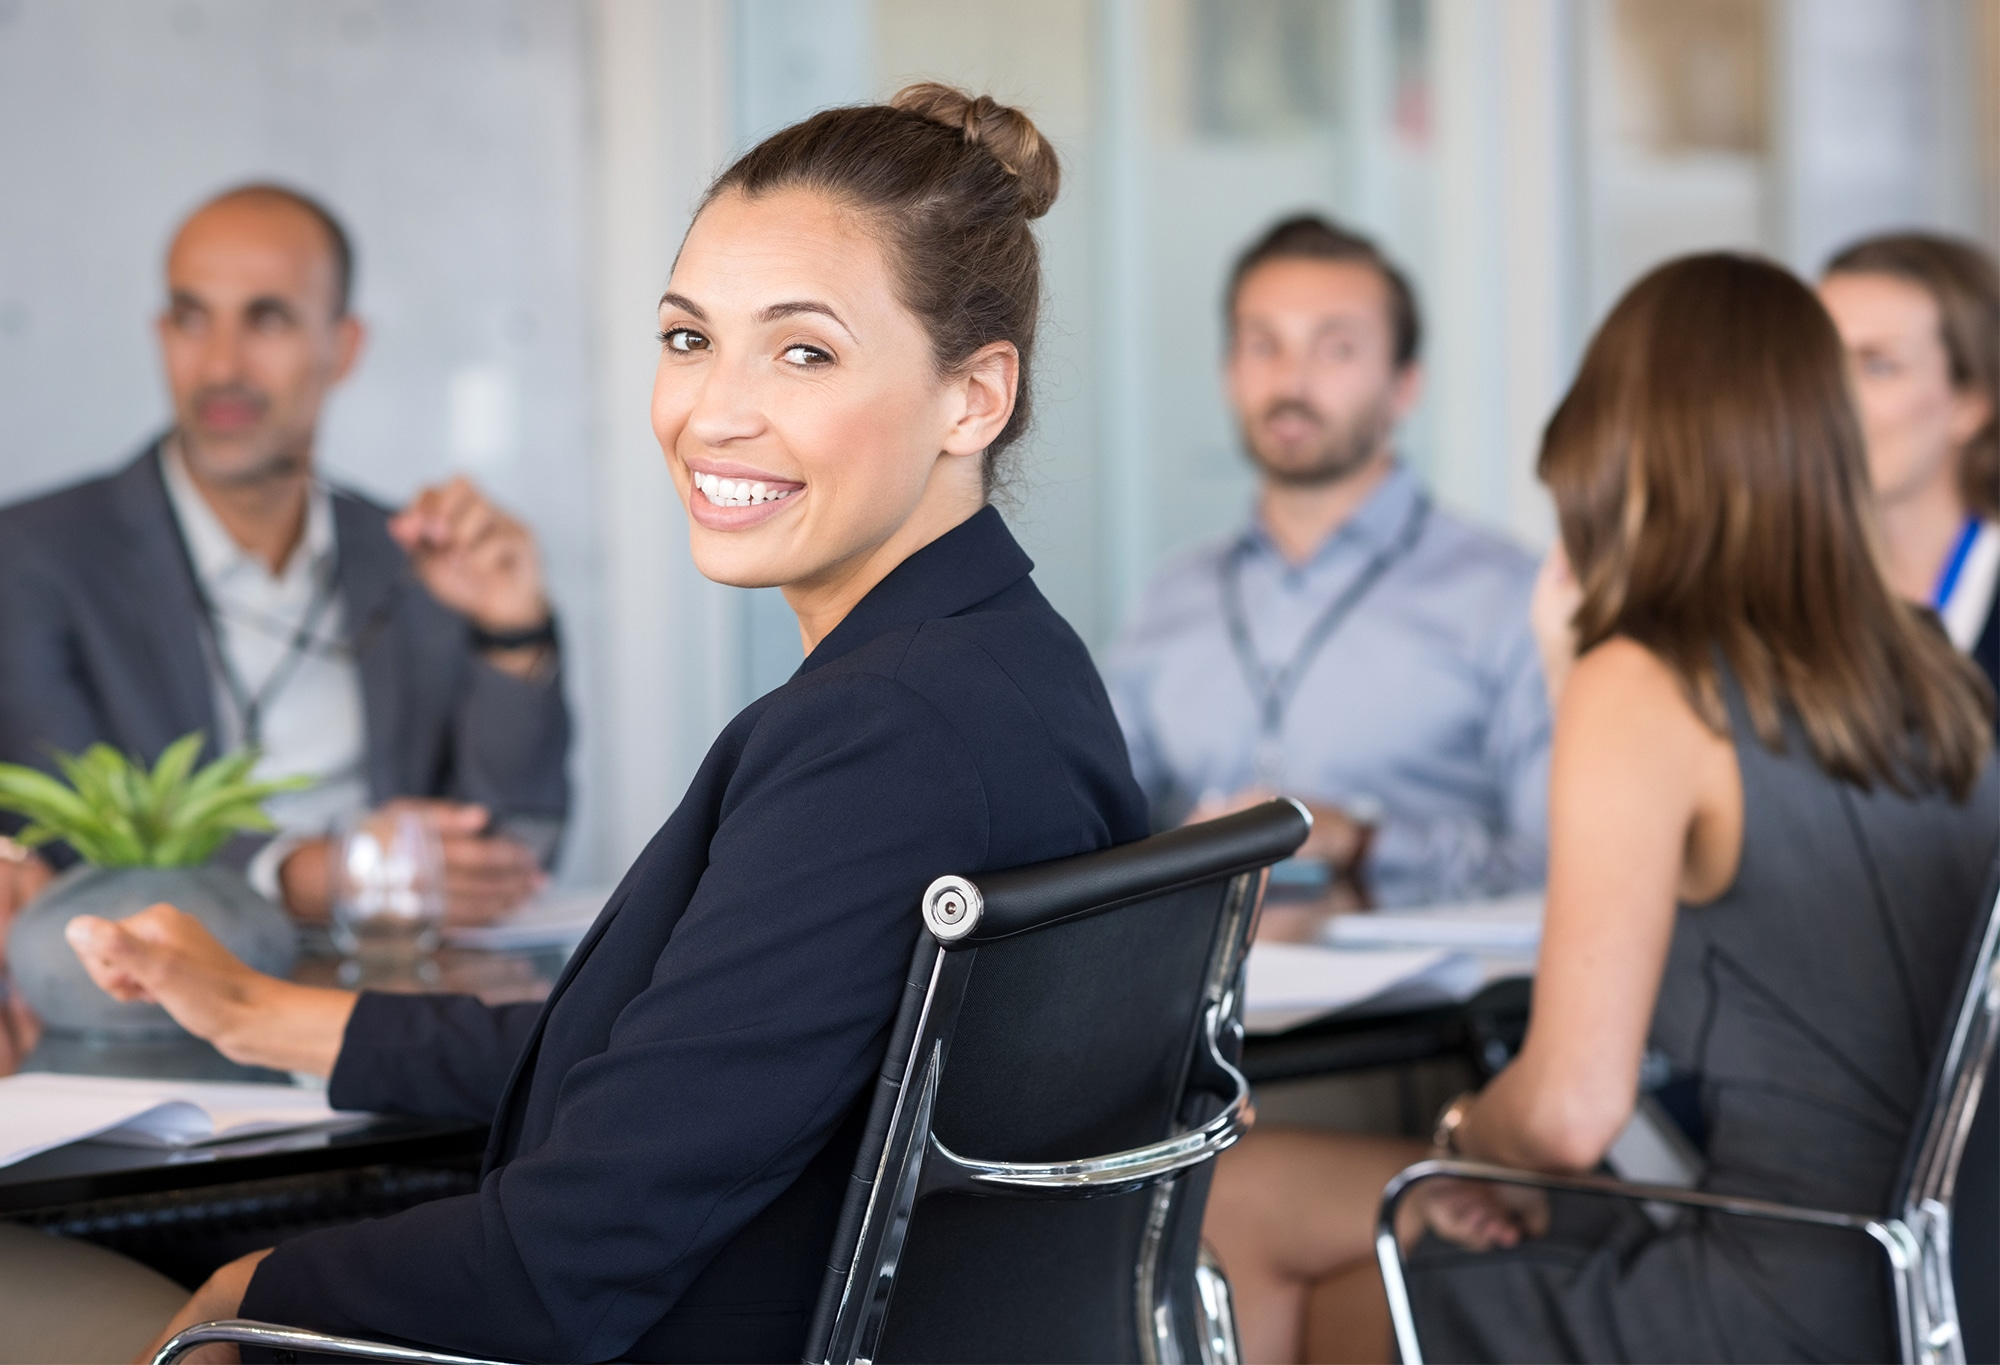 Reinforcing the need for diversity in Latin America's boardrooms Ethical Boardroom